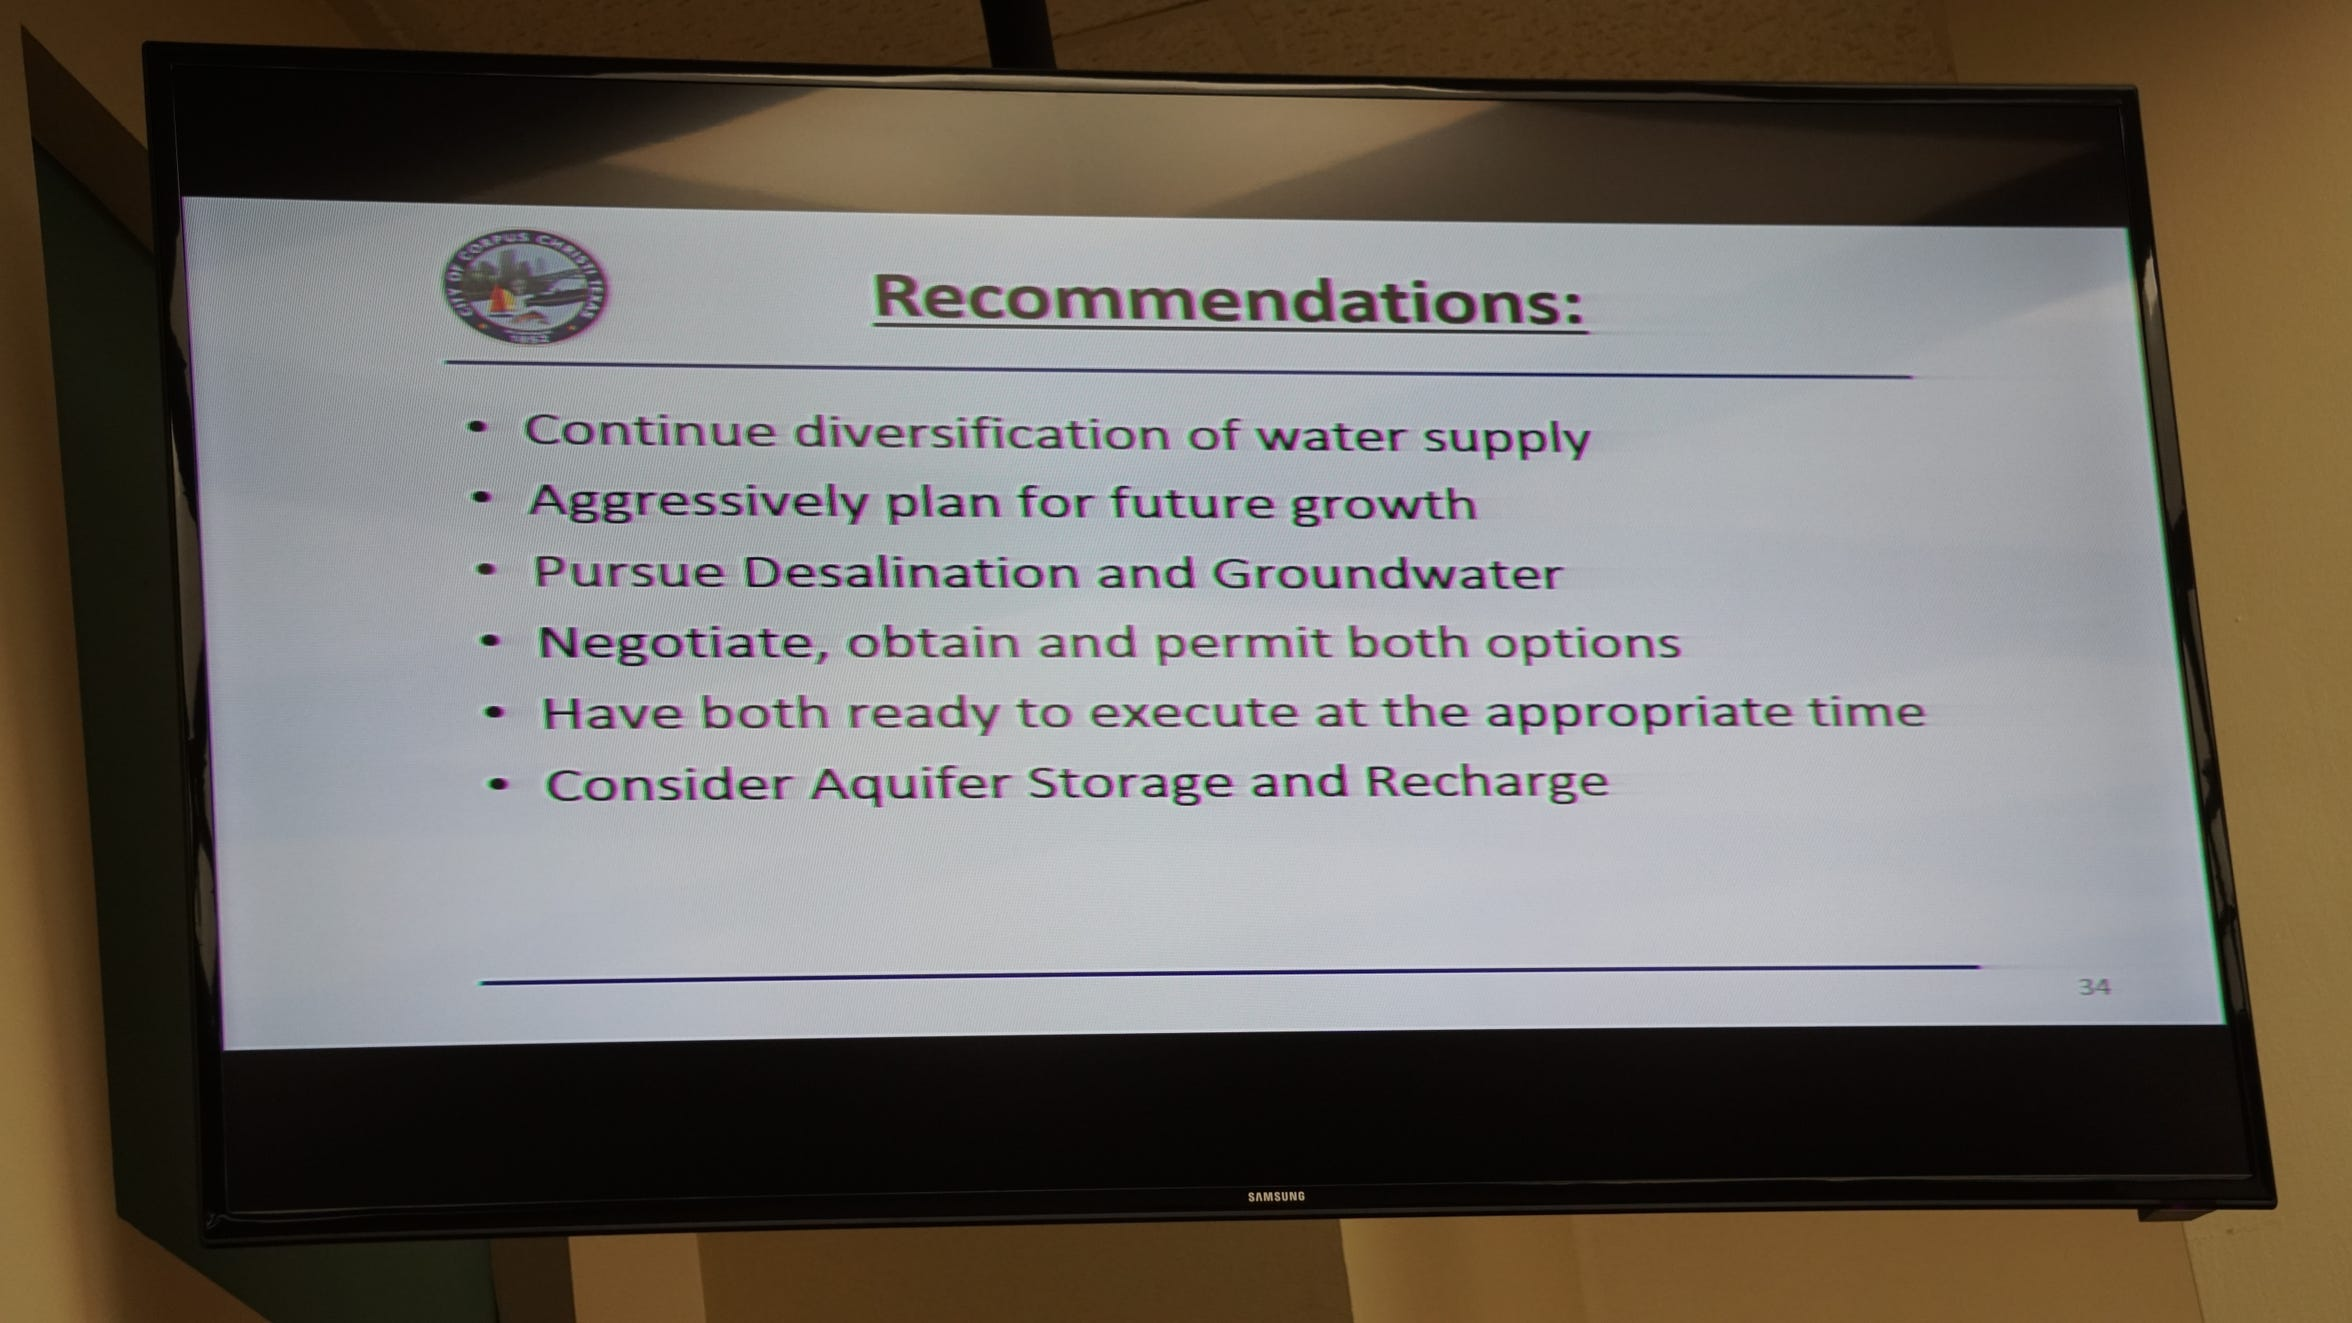 Pictured are recommendations made on July 24, 2018 for the city of Corpus Christi to pursue diversification of its existing water supply.